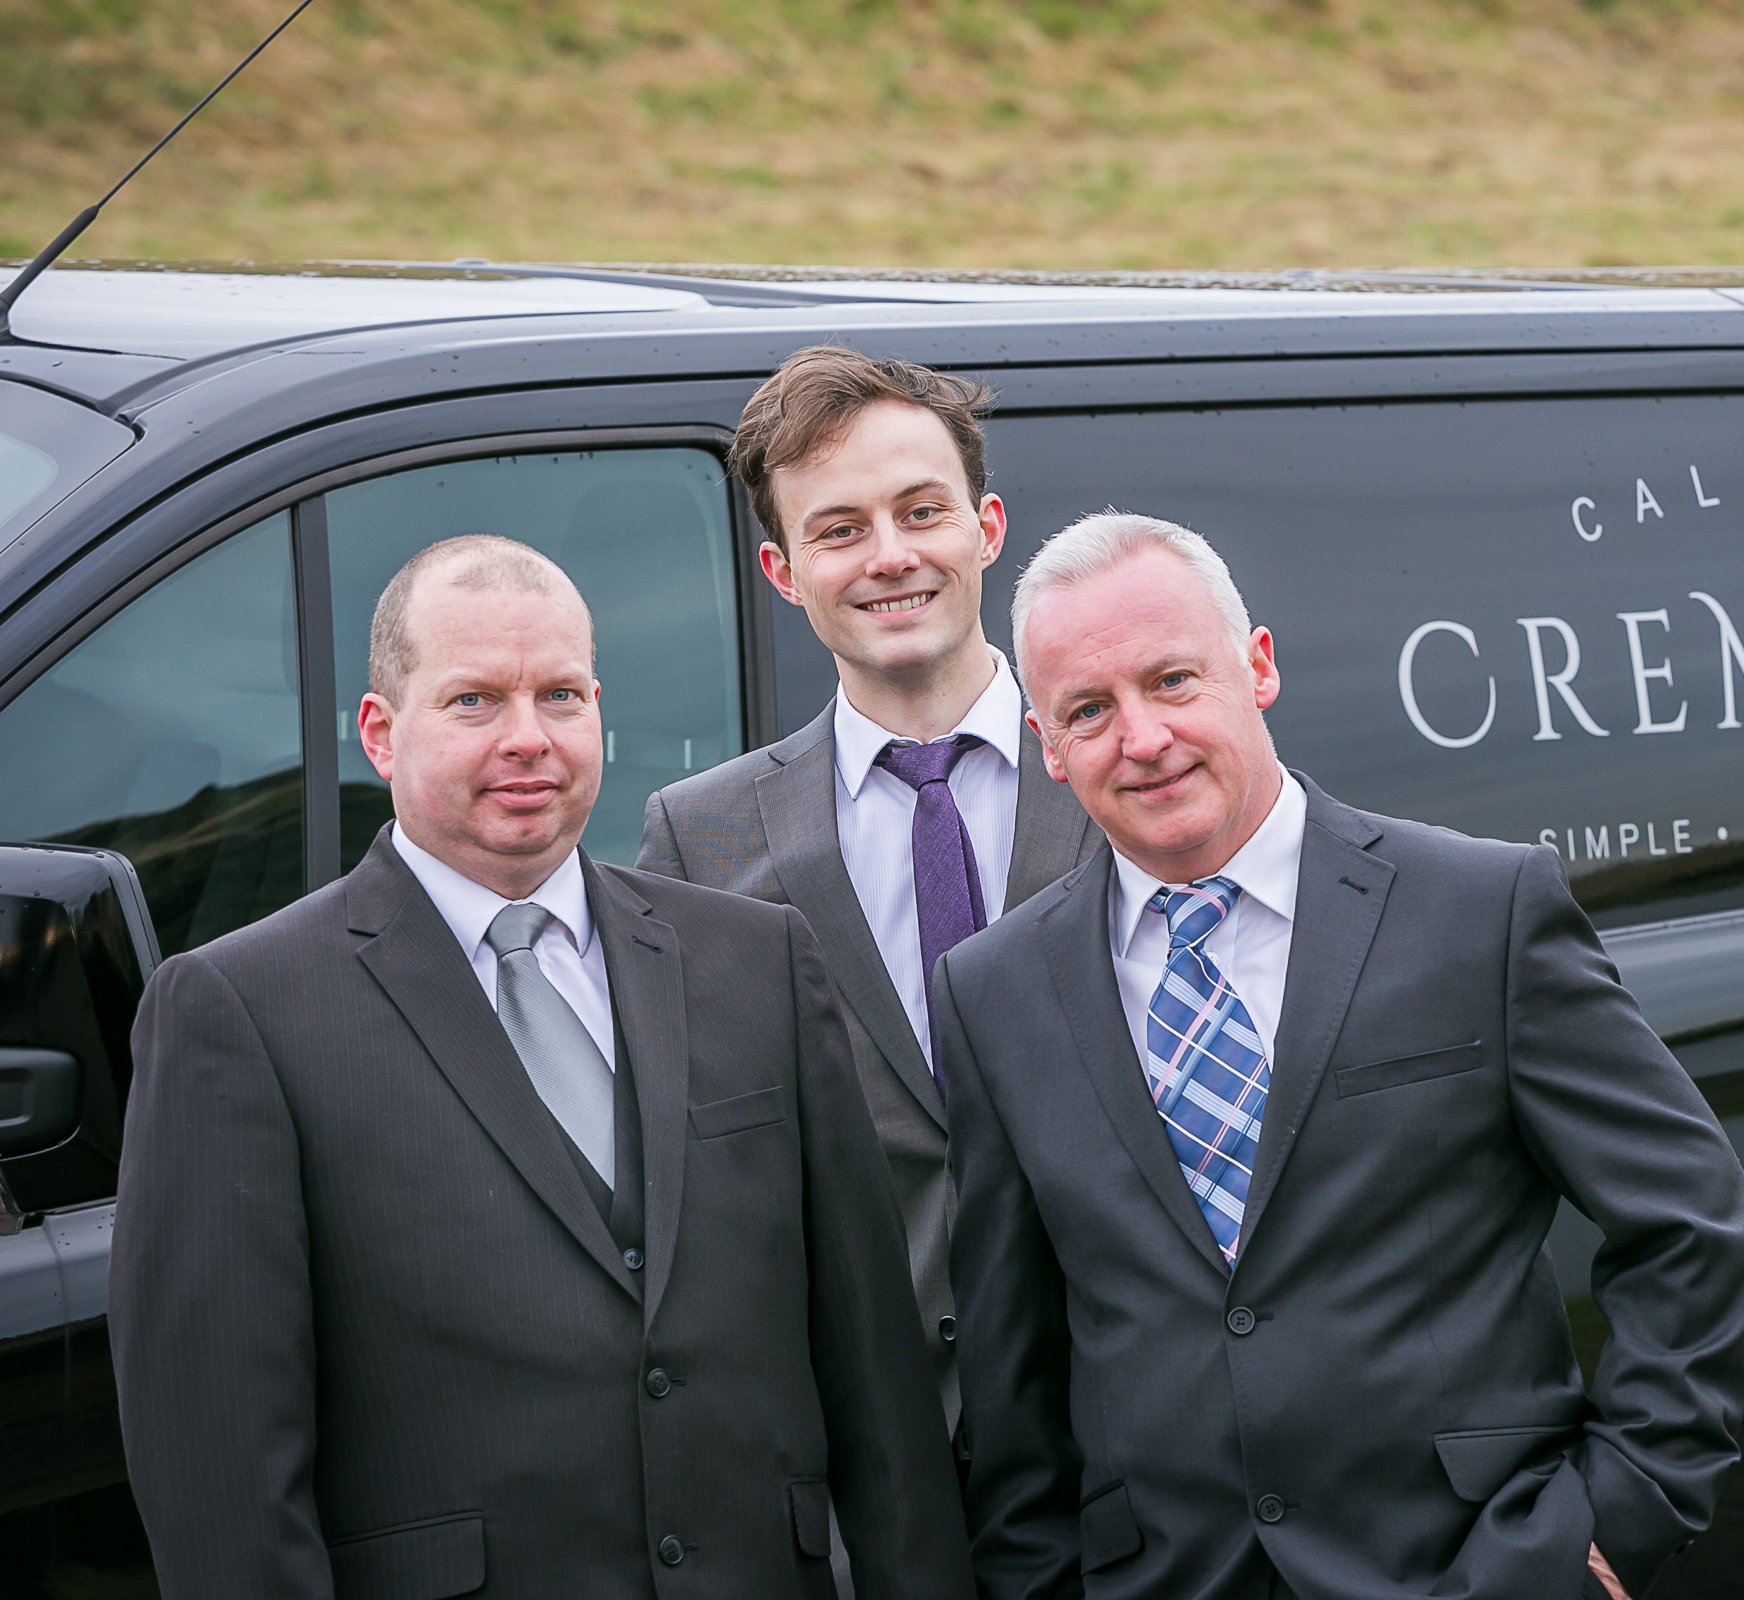 From left: Ian Kirk, John Halliday and Paul McColgan hope Caledonia Cremation can reduce 'funeral poverty' in Scotland